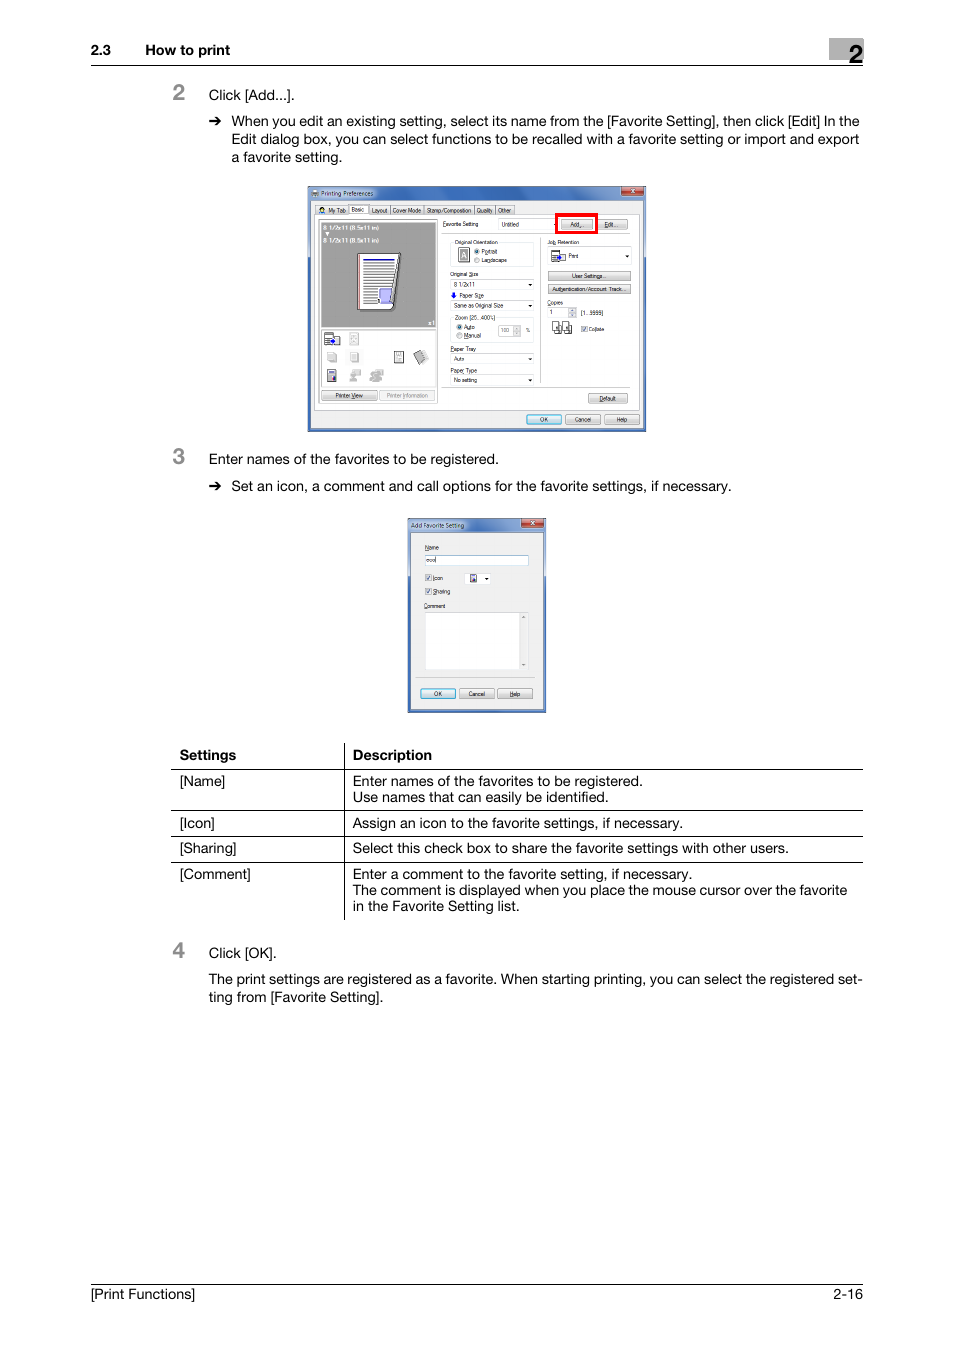 Konica Minolta bizhub C3350 User Manual | Page 26 / 119